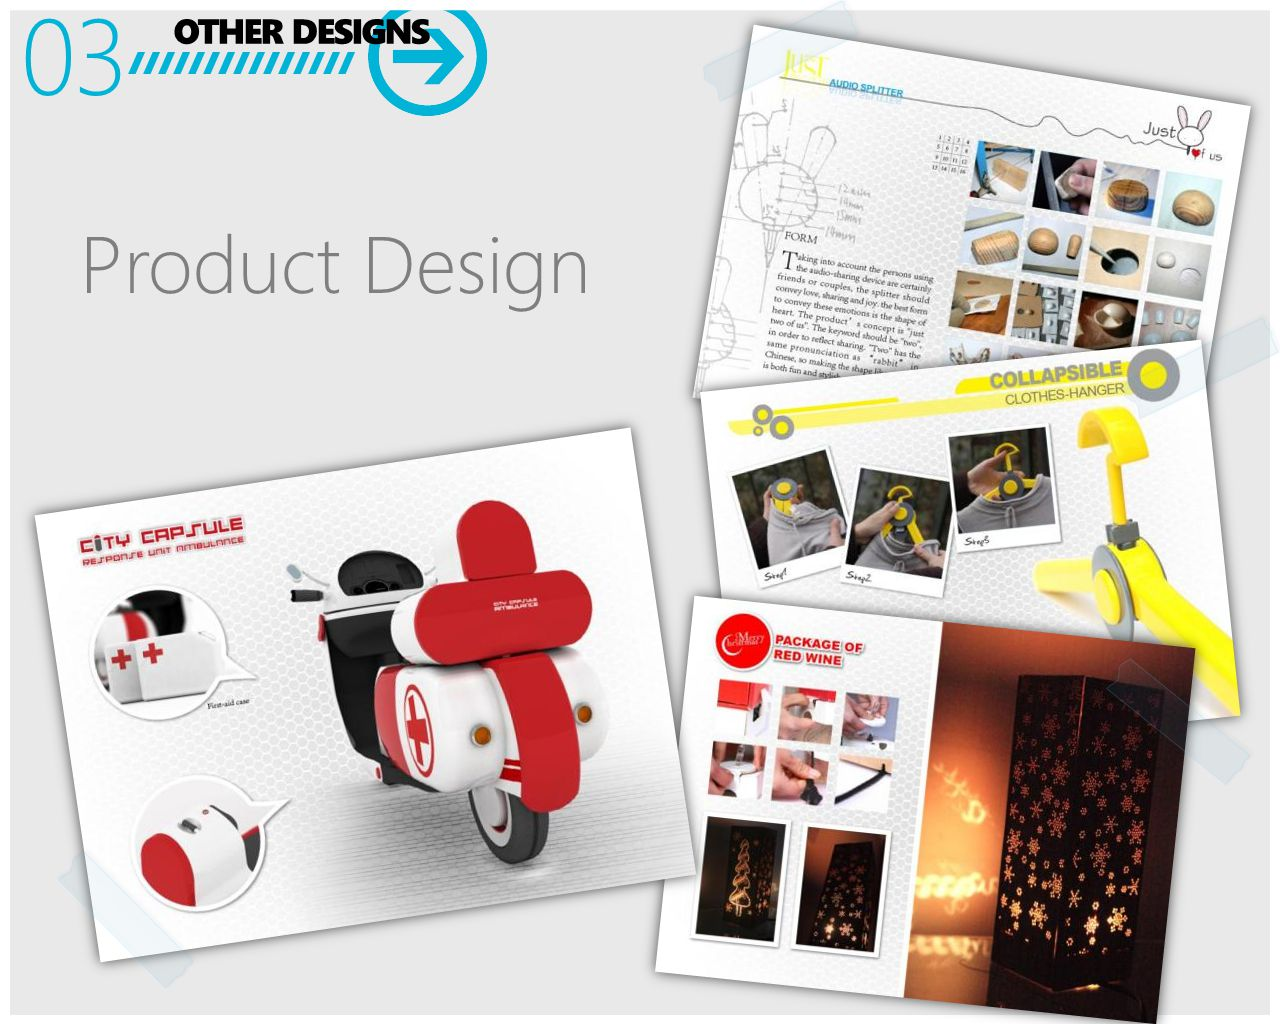 OTHER DESIGNS 03 Product Design